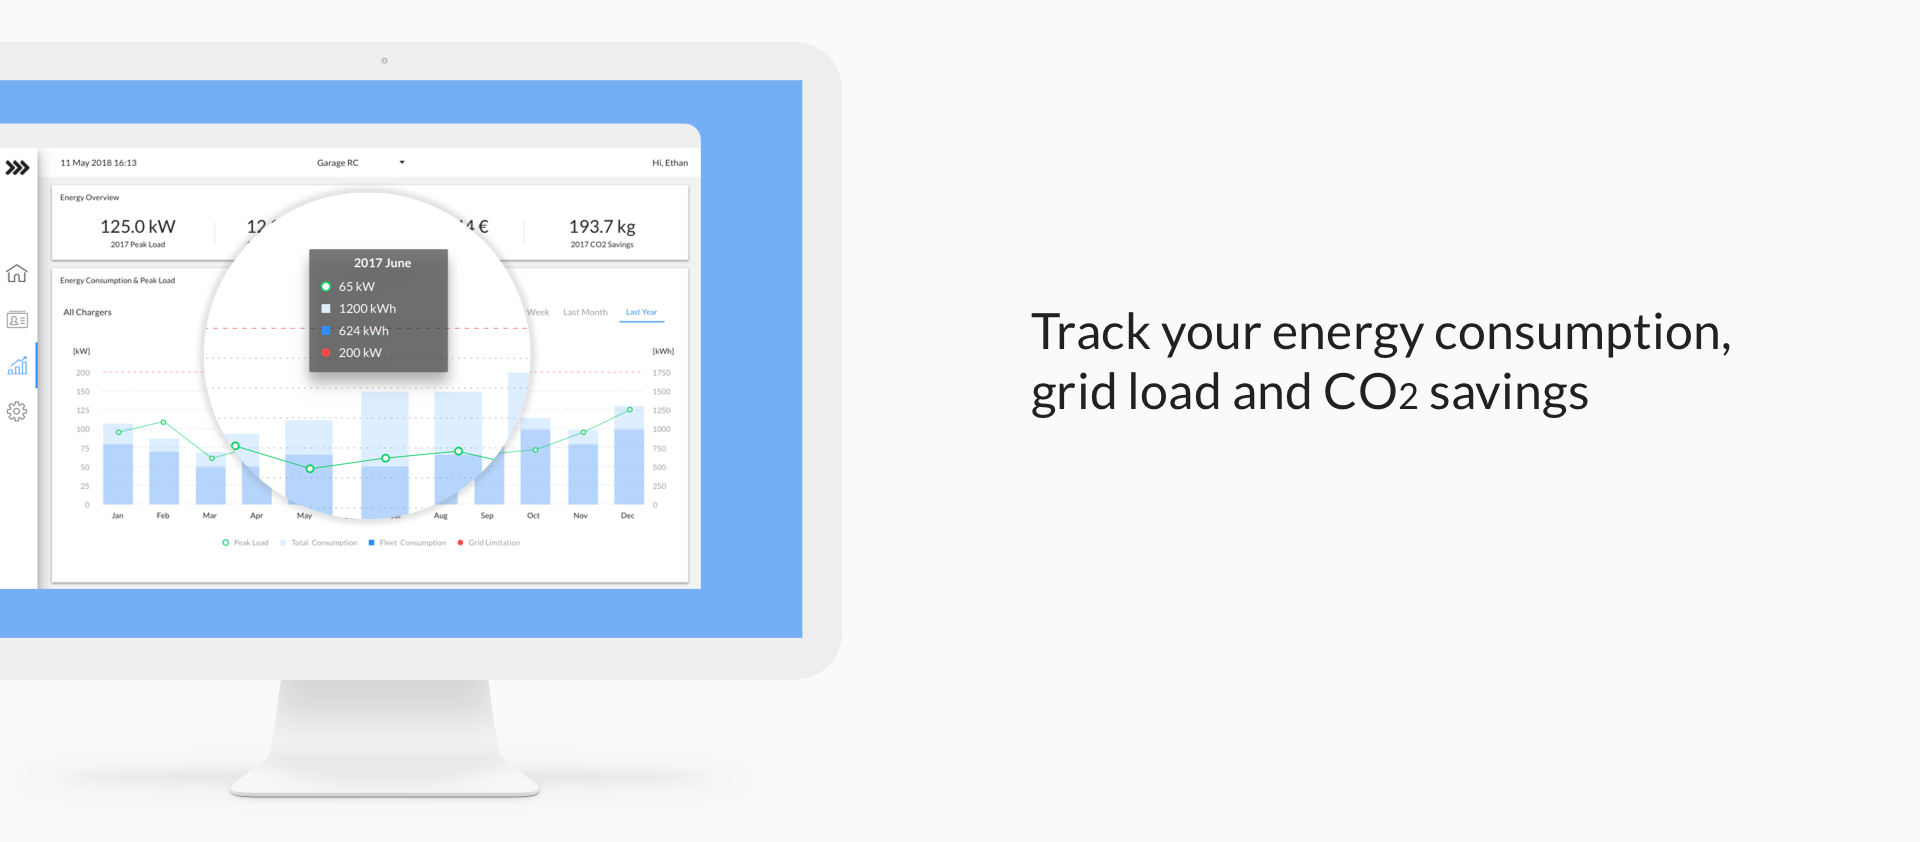 Track your energy consumption